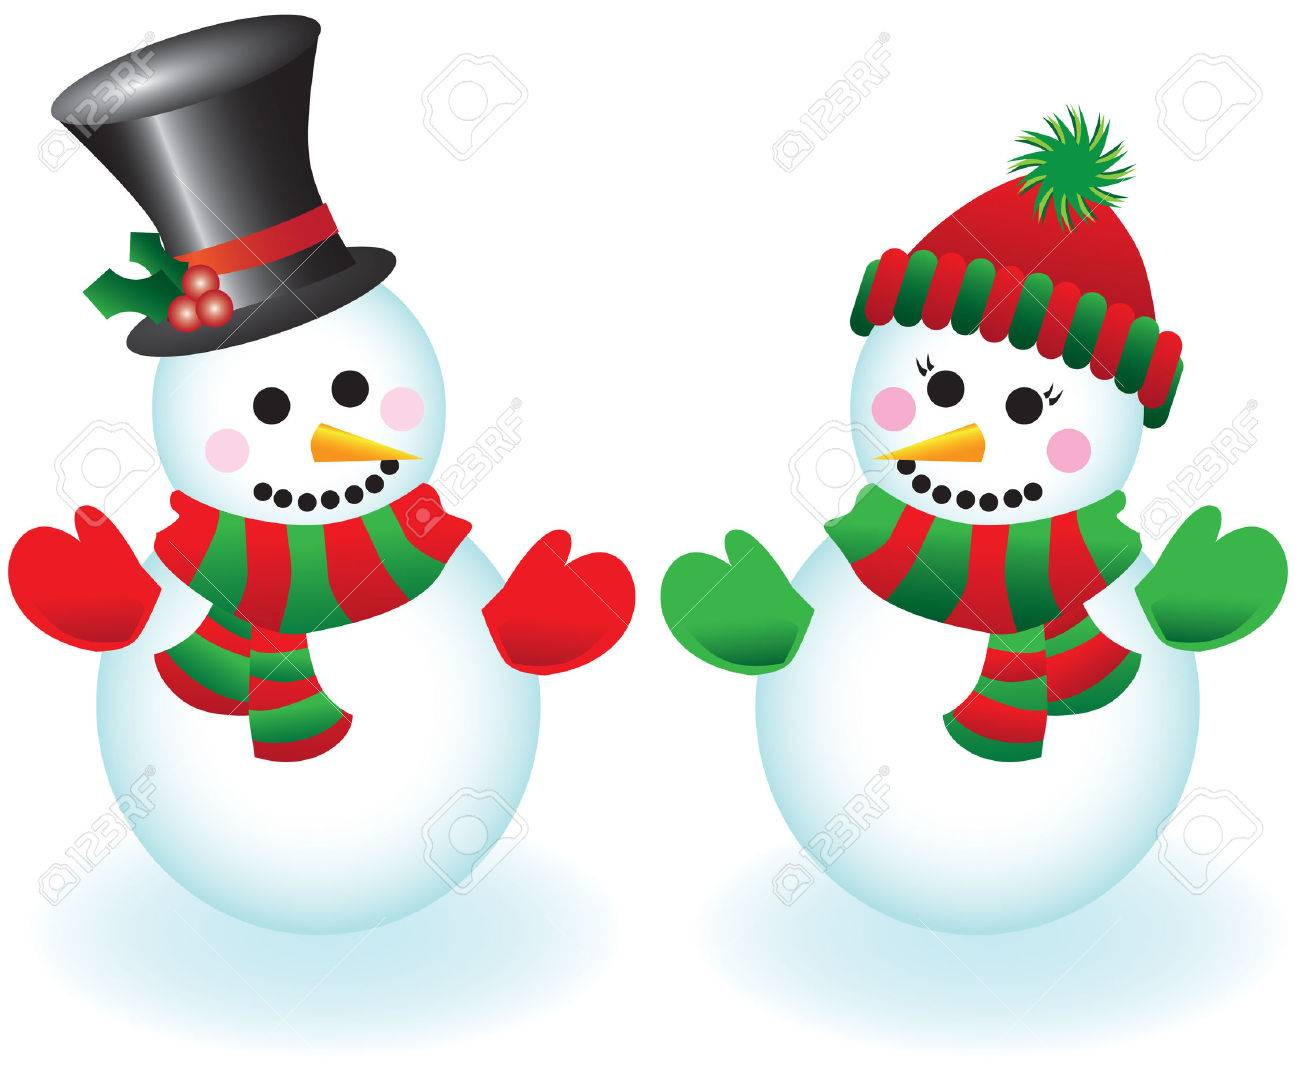 Vector illustration of a happy snowman and snowlady wearing hats, mittens and scarves Stock Vector - 3503711